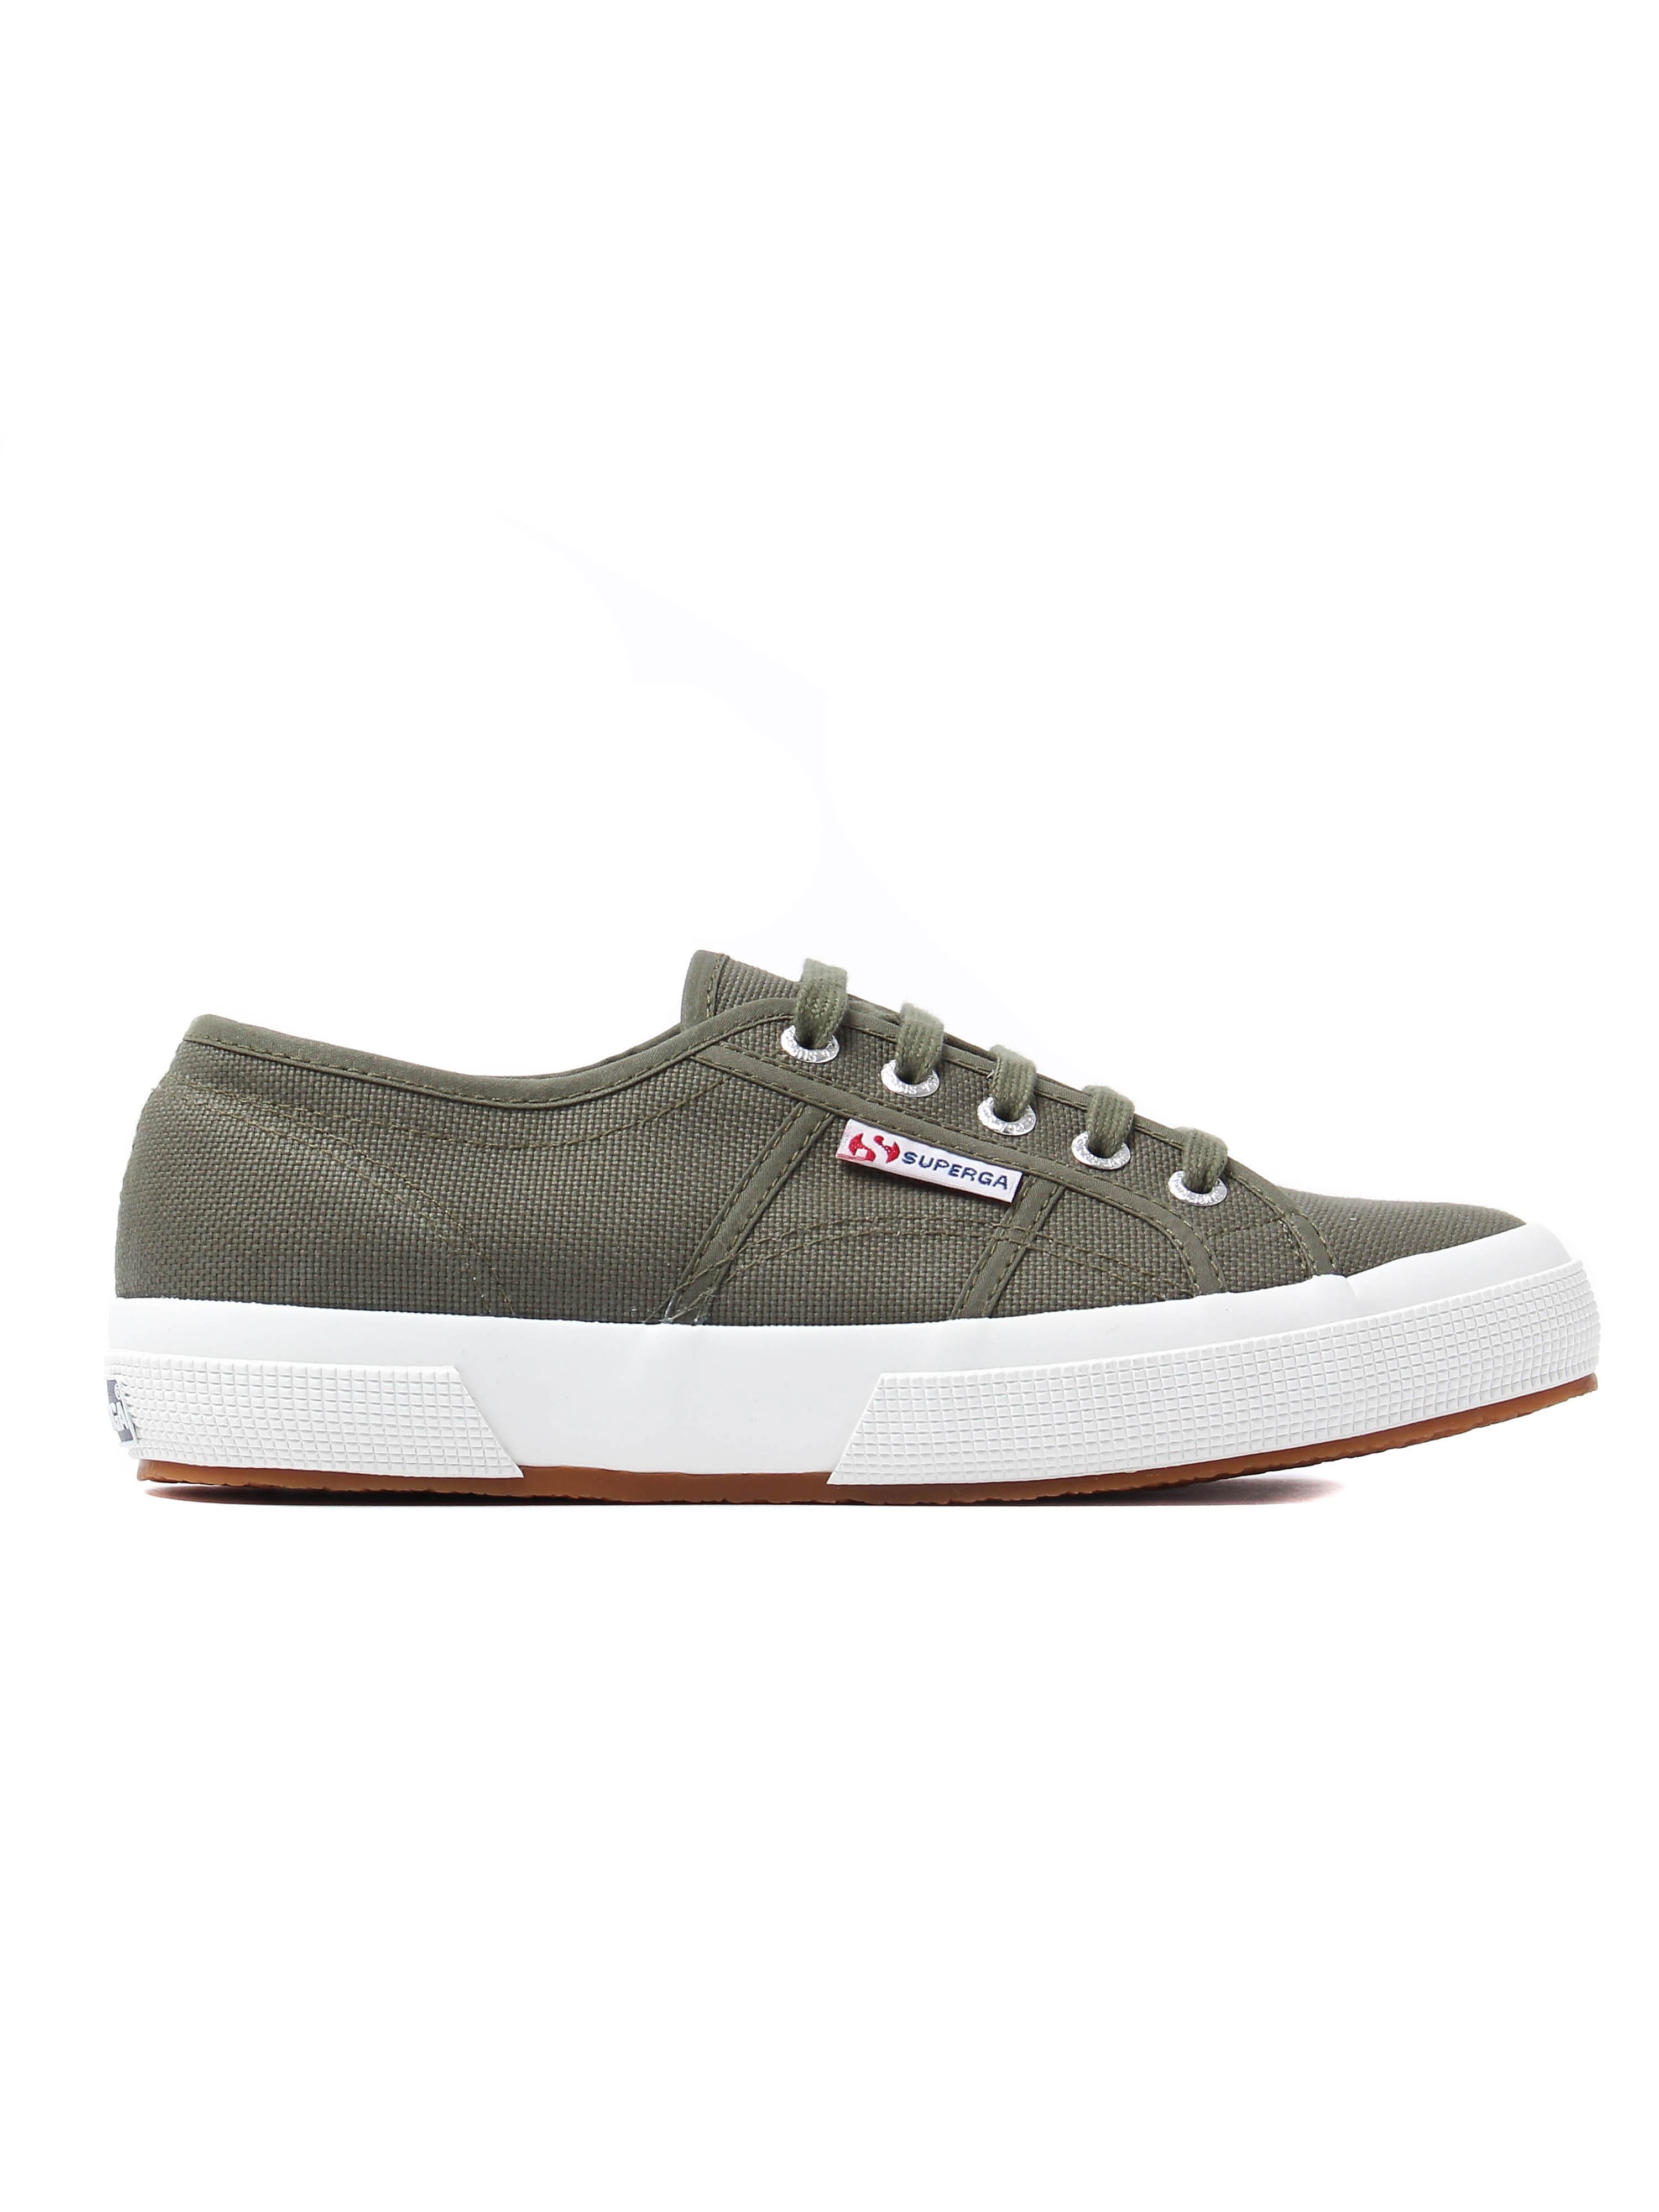 Superga Women's 2750 Cotu Classics Canvas Trainers - Sherwood